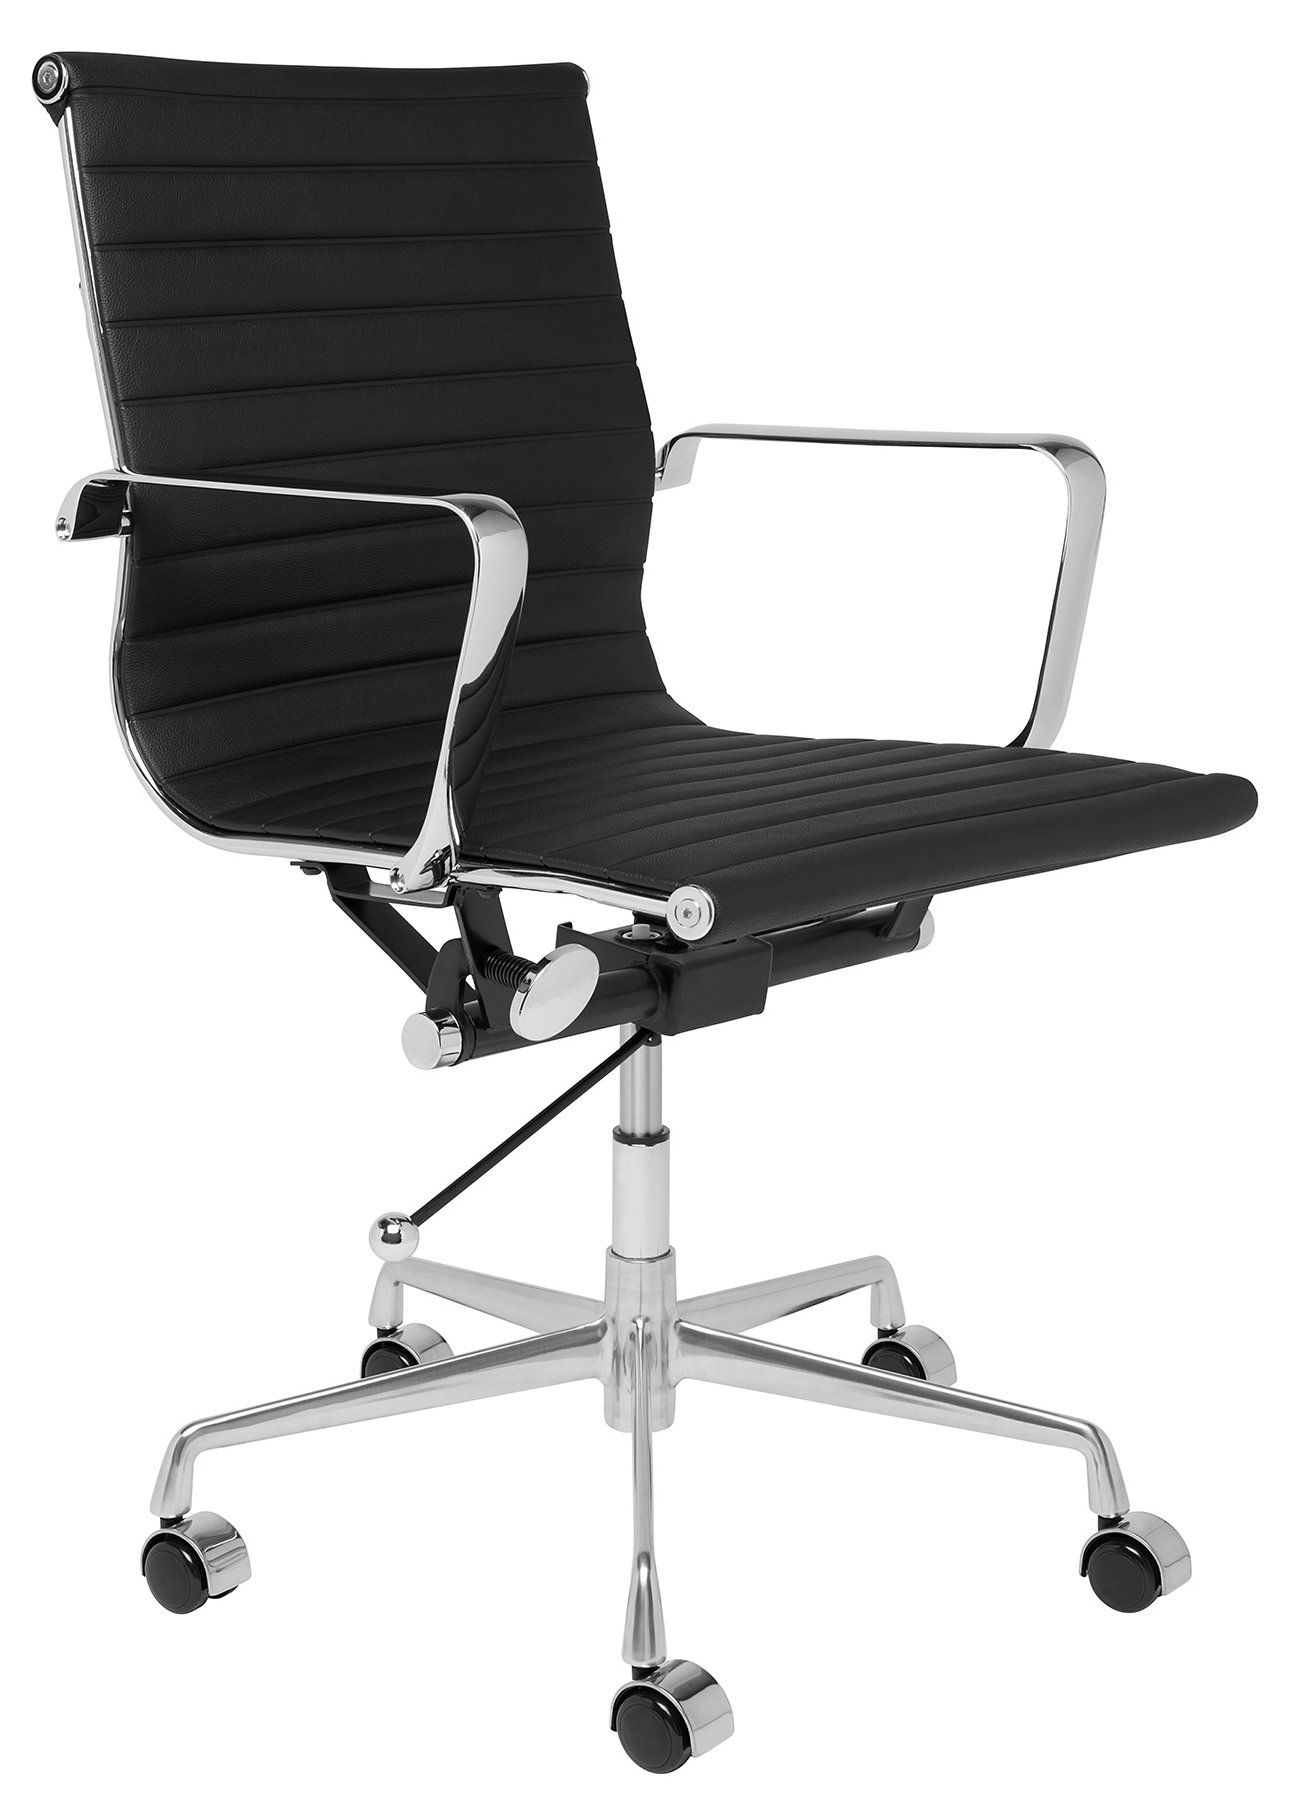 Soho Eames Style Ribbed Management Office Chair Black